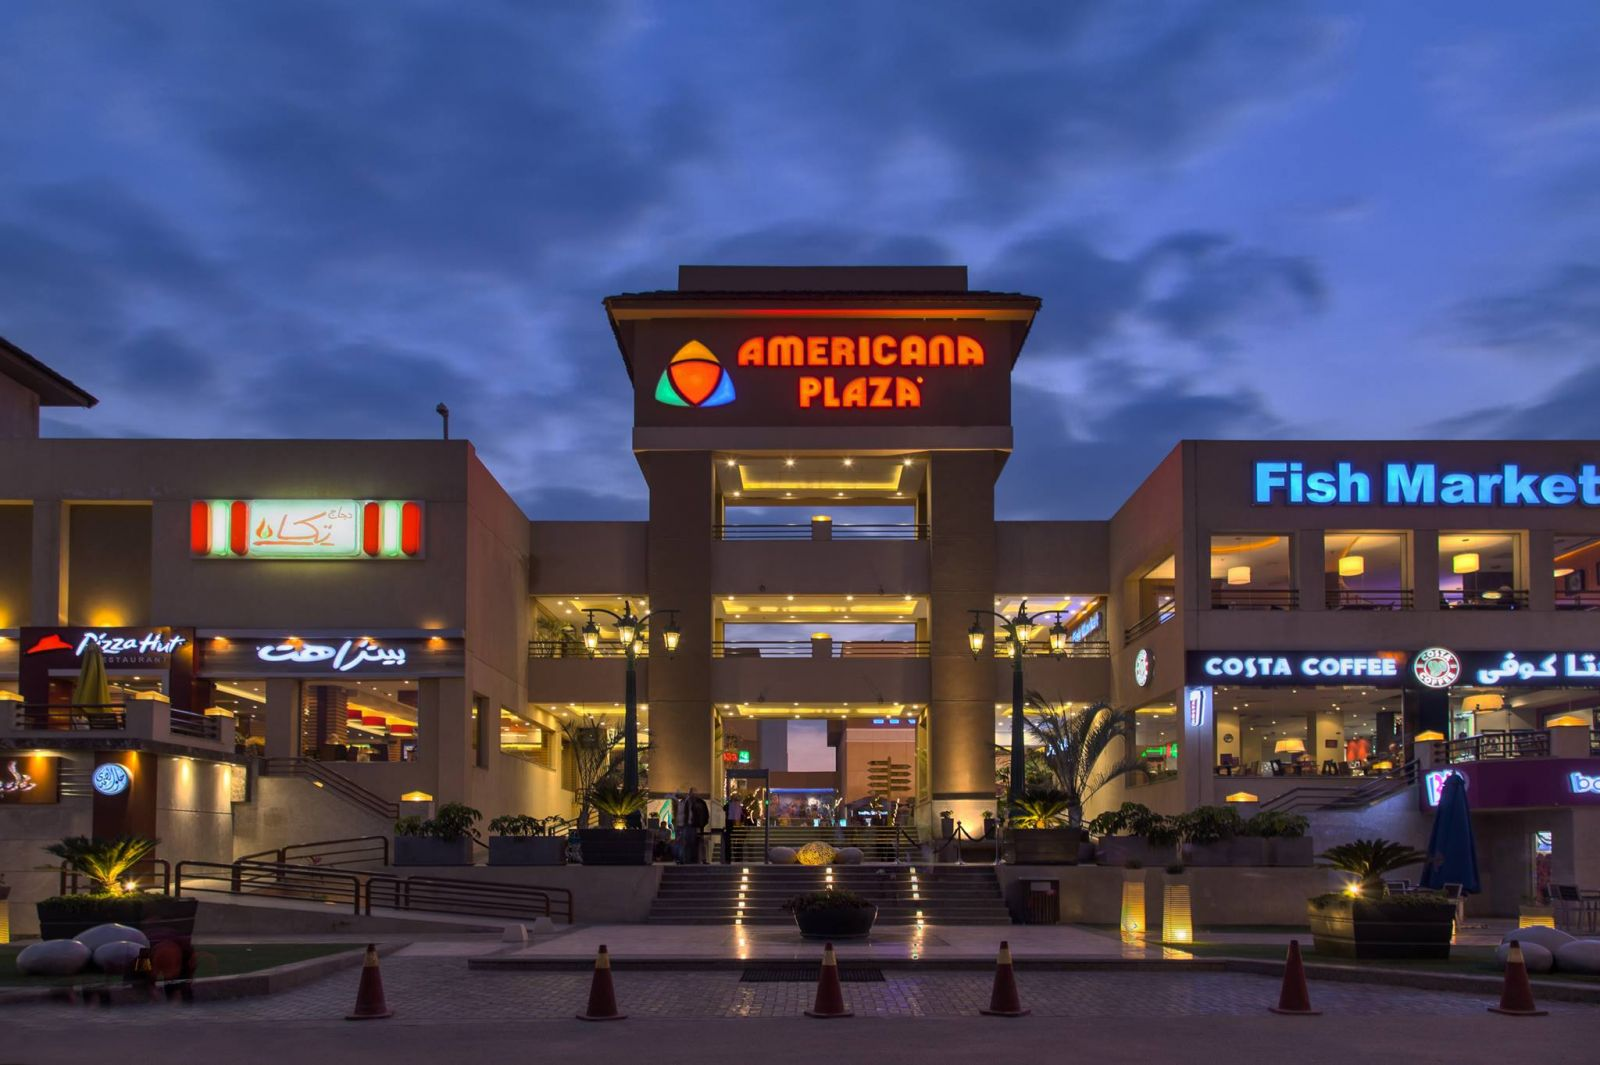 amrecana plaza new cairo